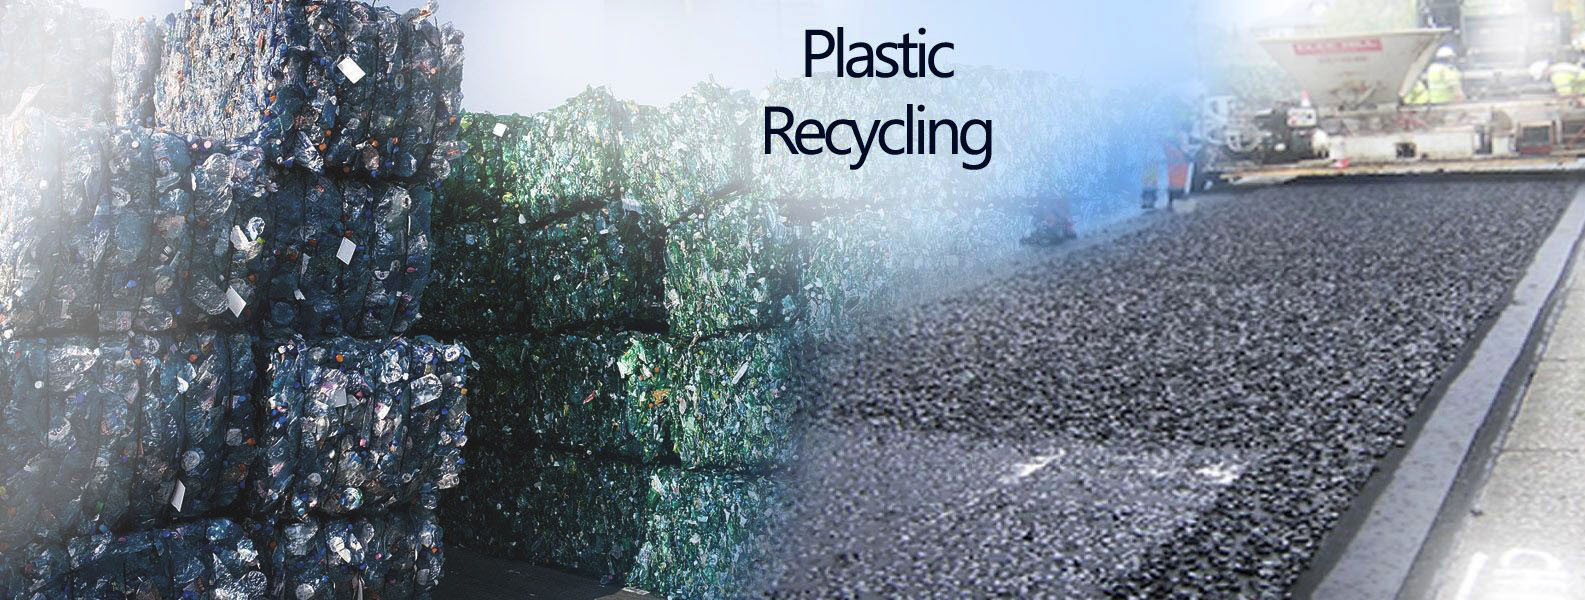 WHAT IS PLASTIC RECYCLING?